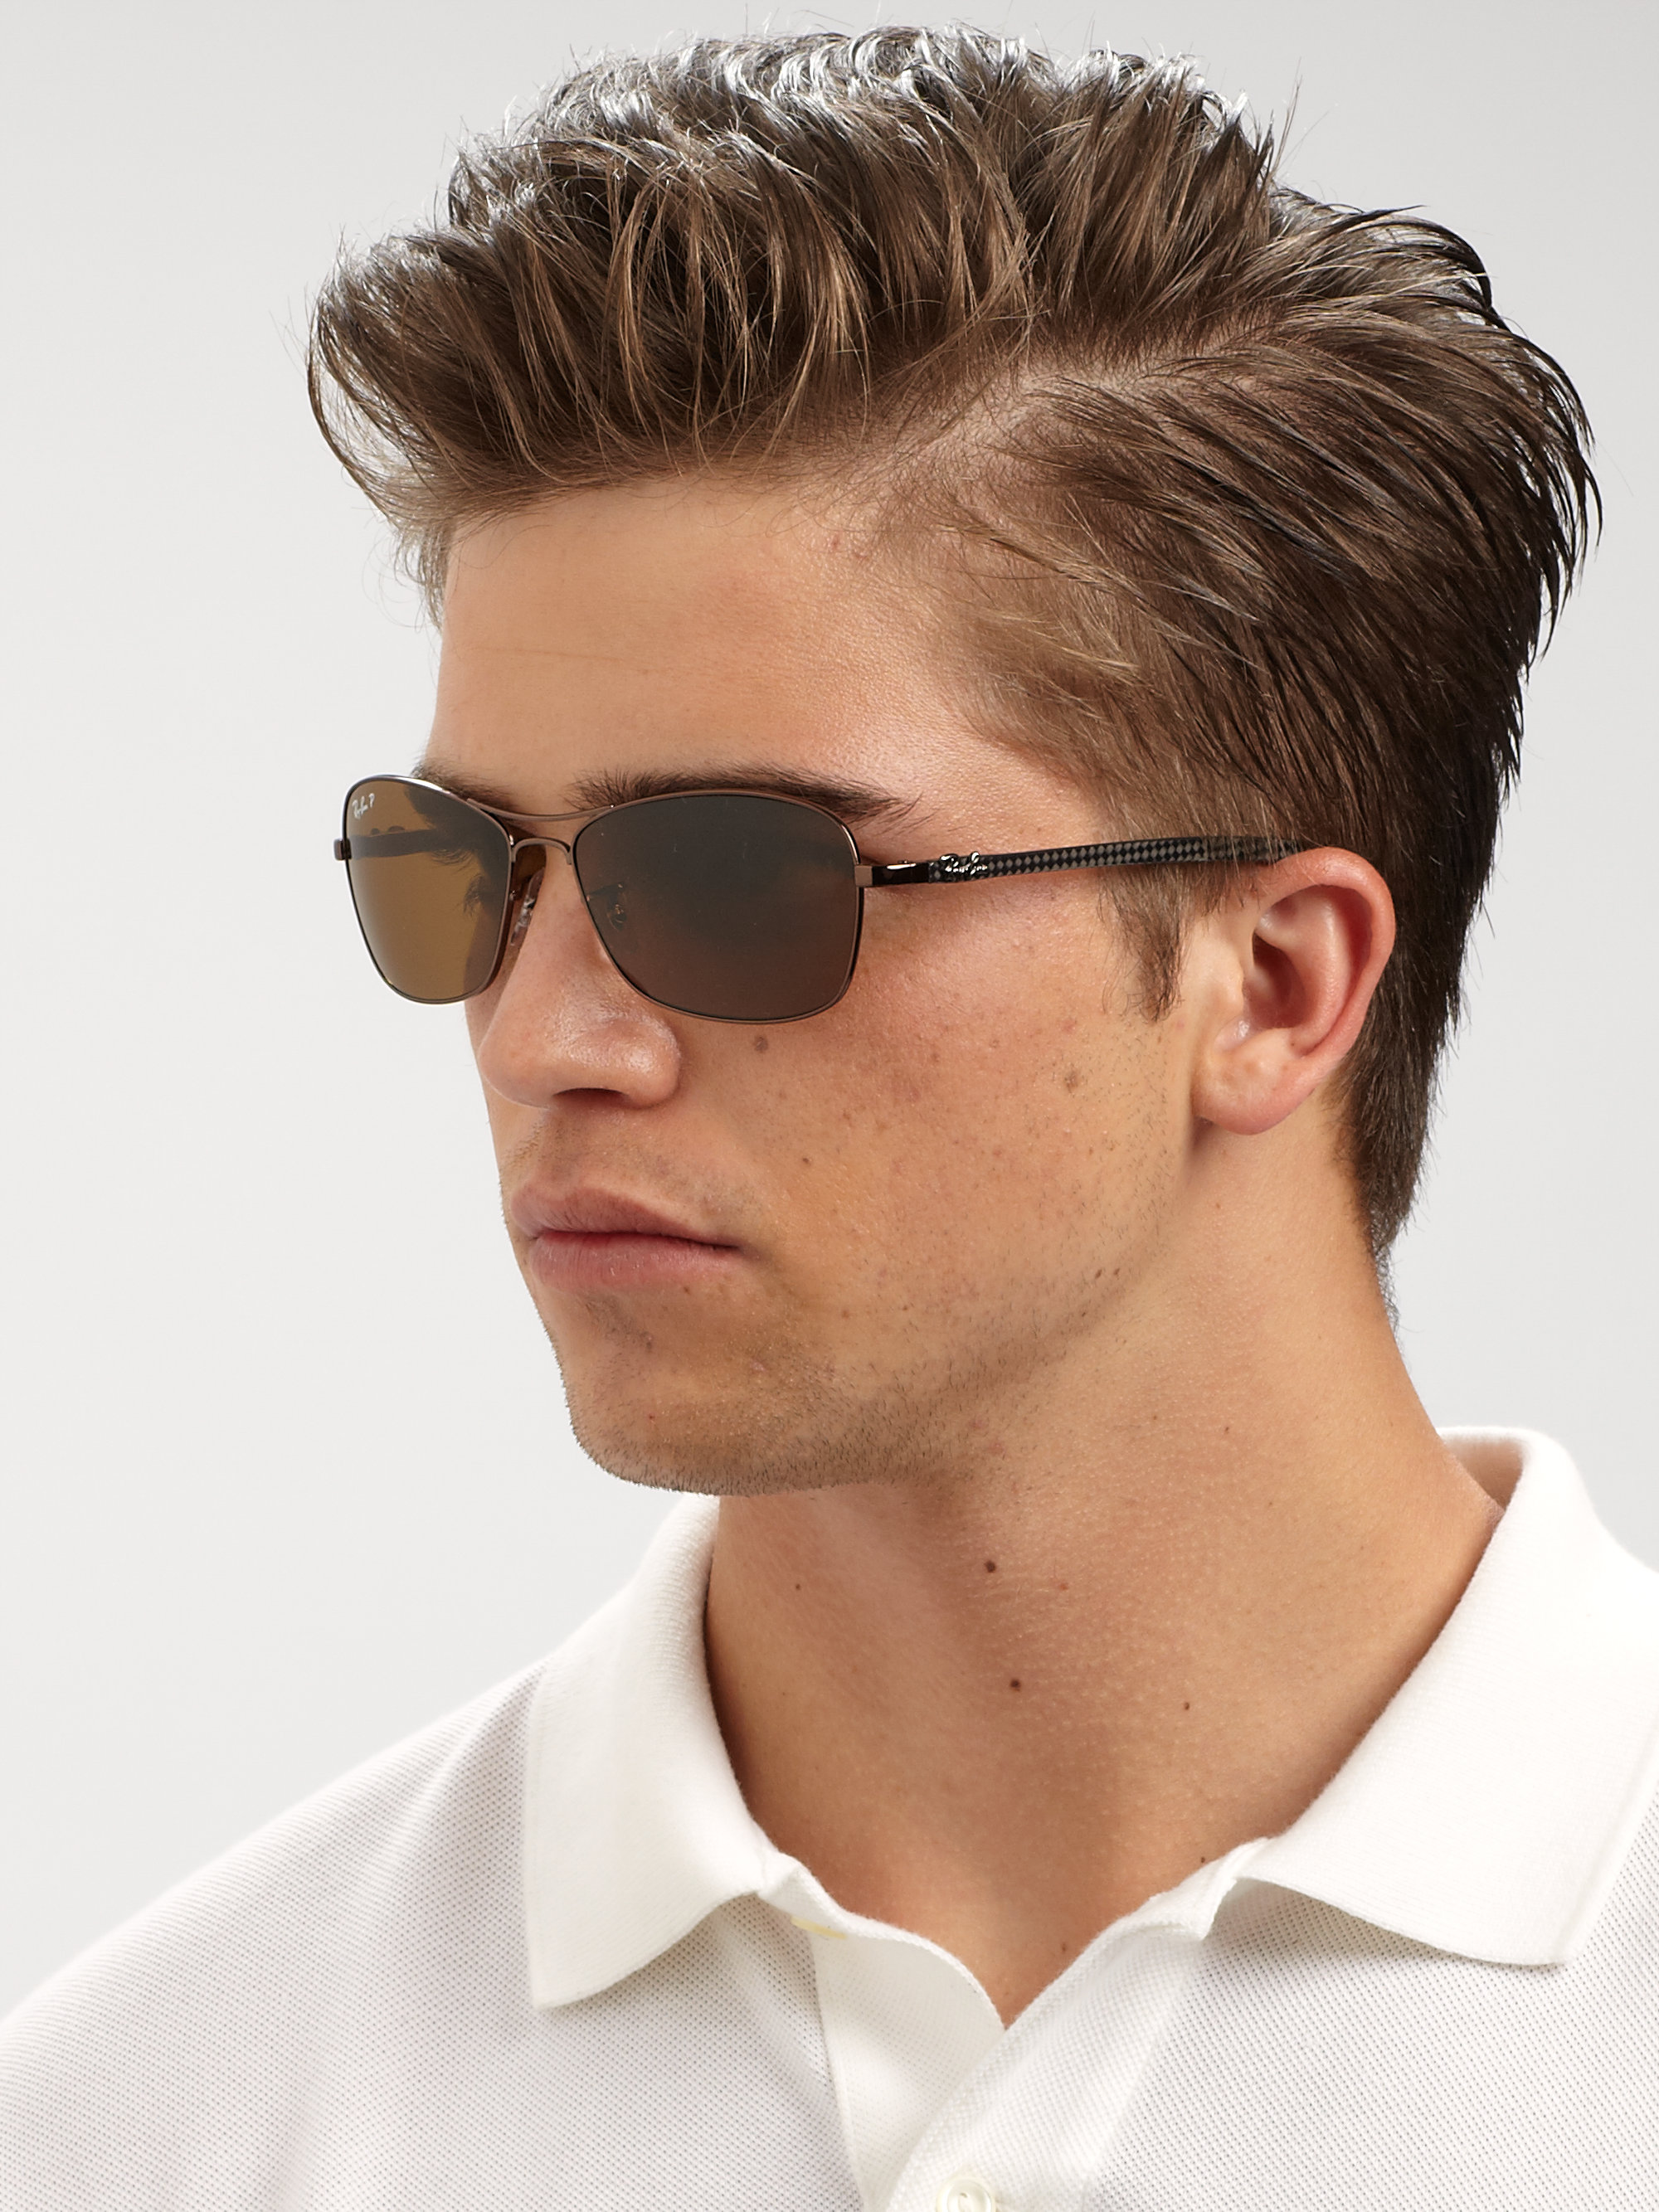 ray ban men  Ray Ban Wayfarer Sunglasses Men - Ficts